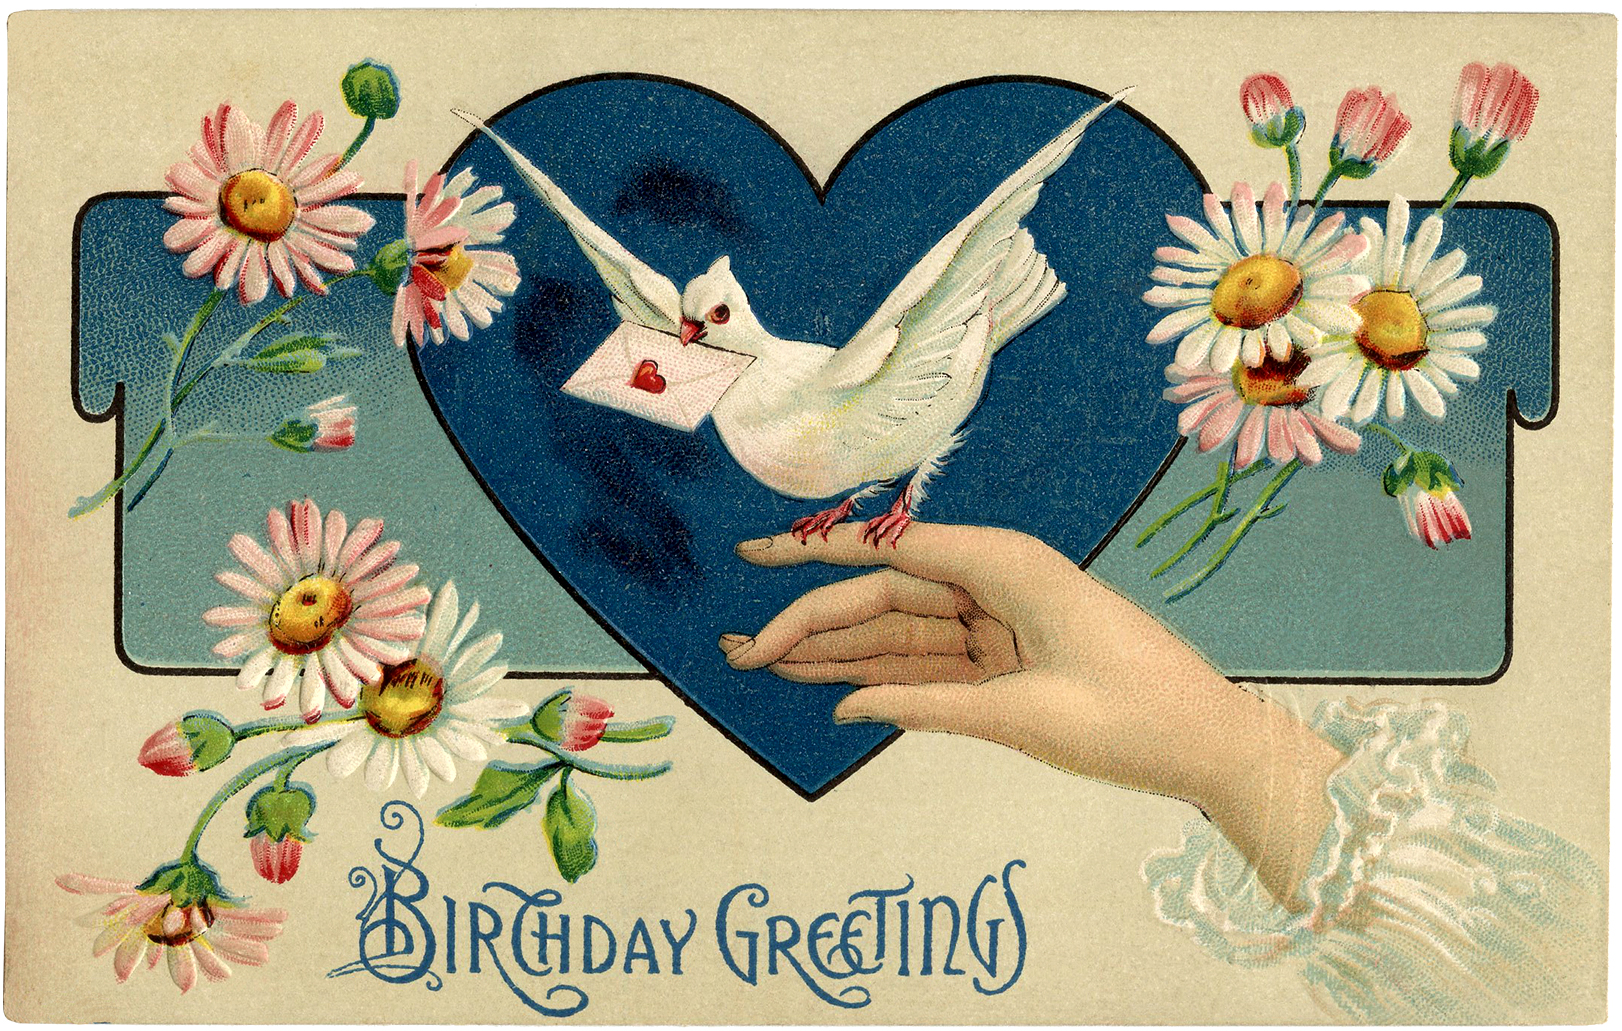 This Is A Pretty Vintage Birthday Illustration Shown Here Antique Postcard The Card Features Delicate Ladies Hand Perched On Her